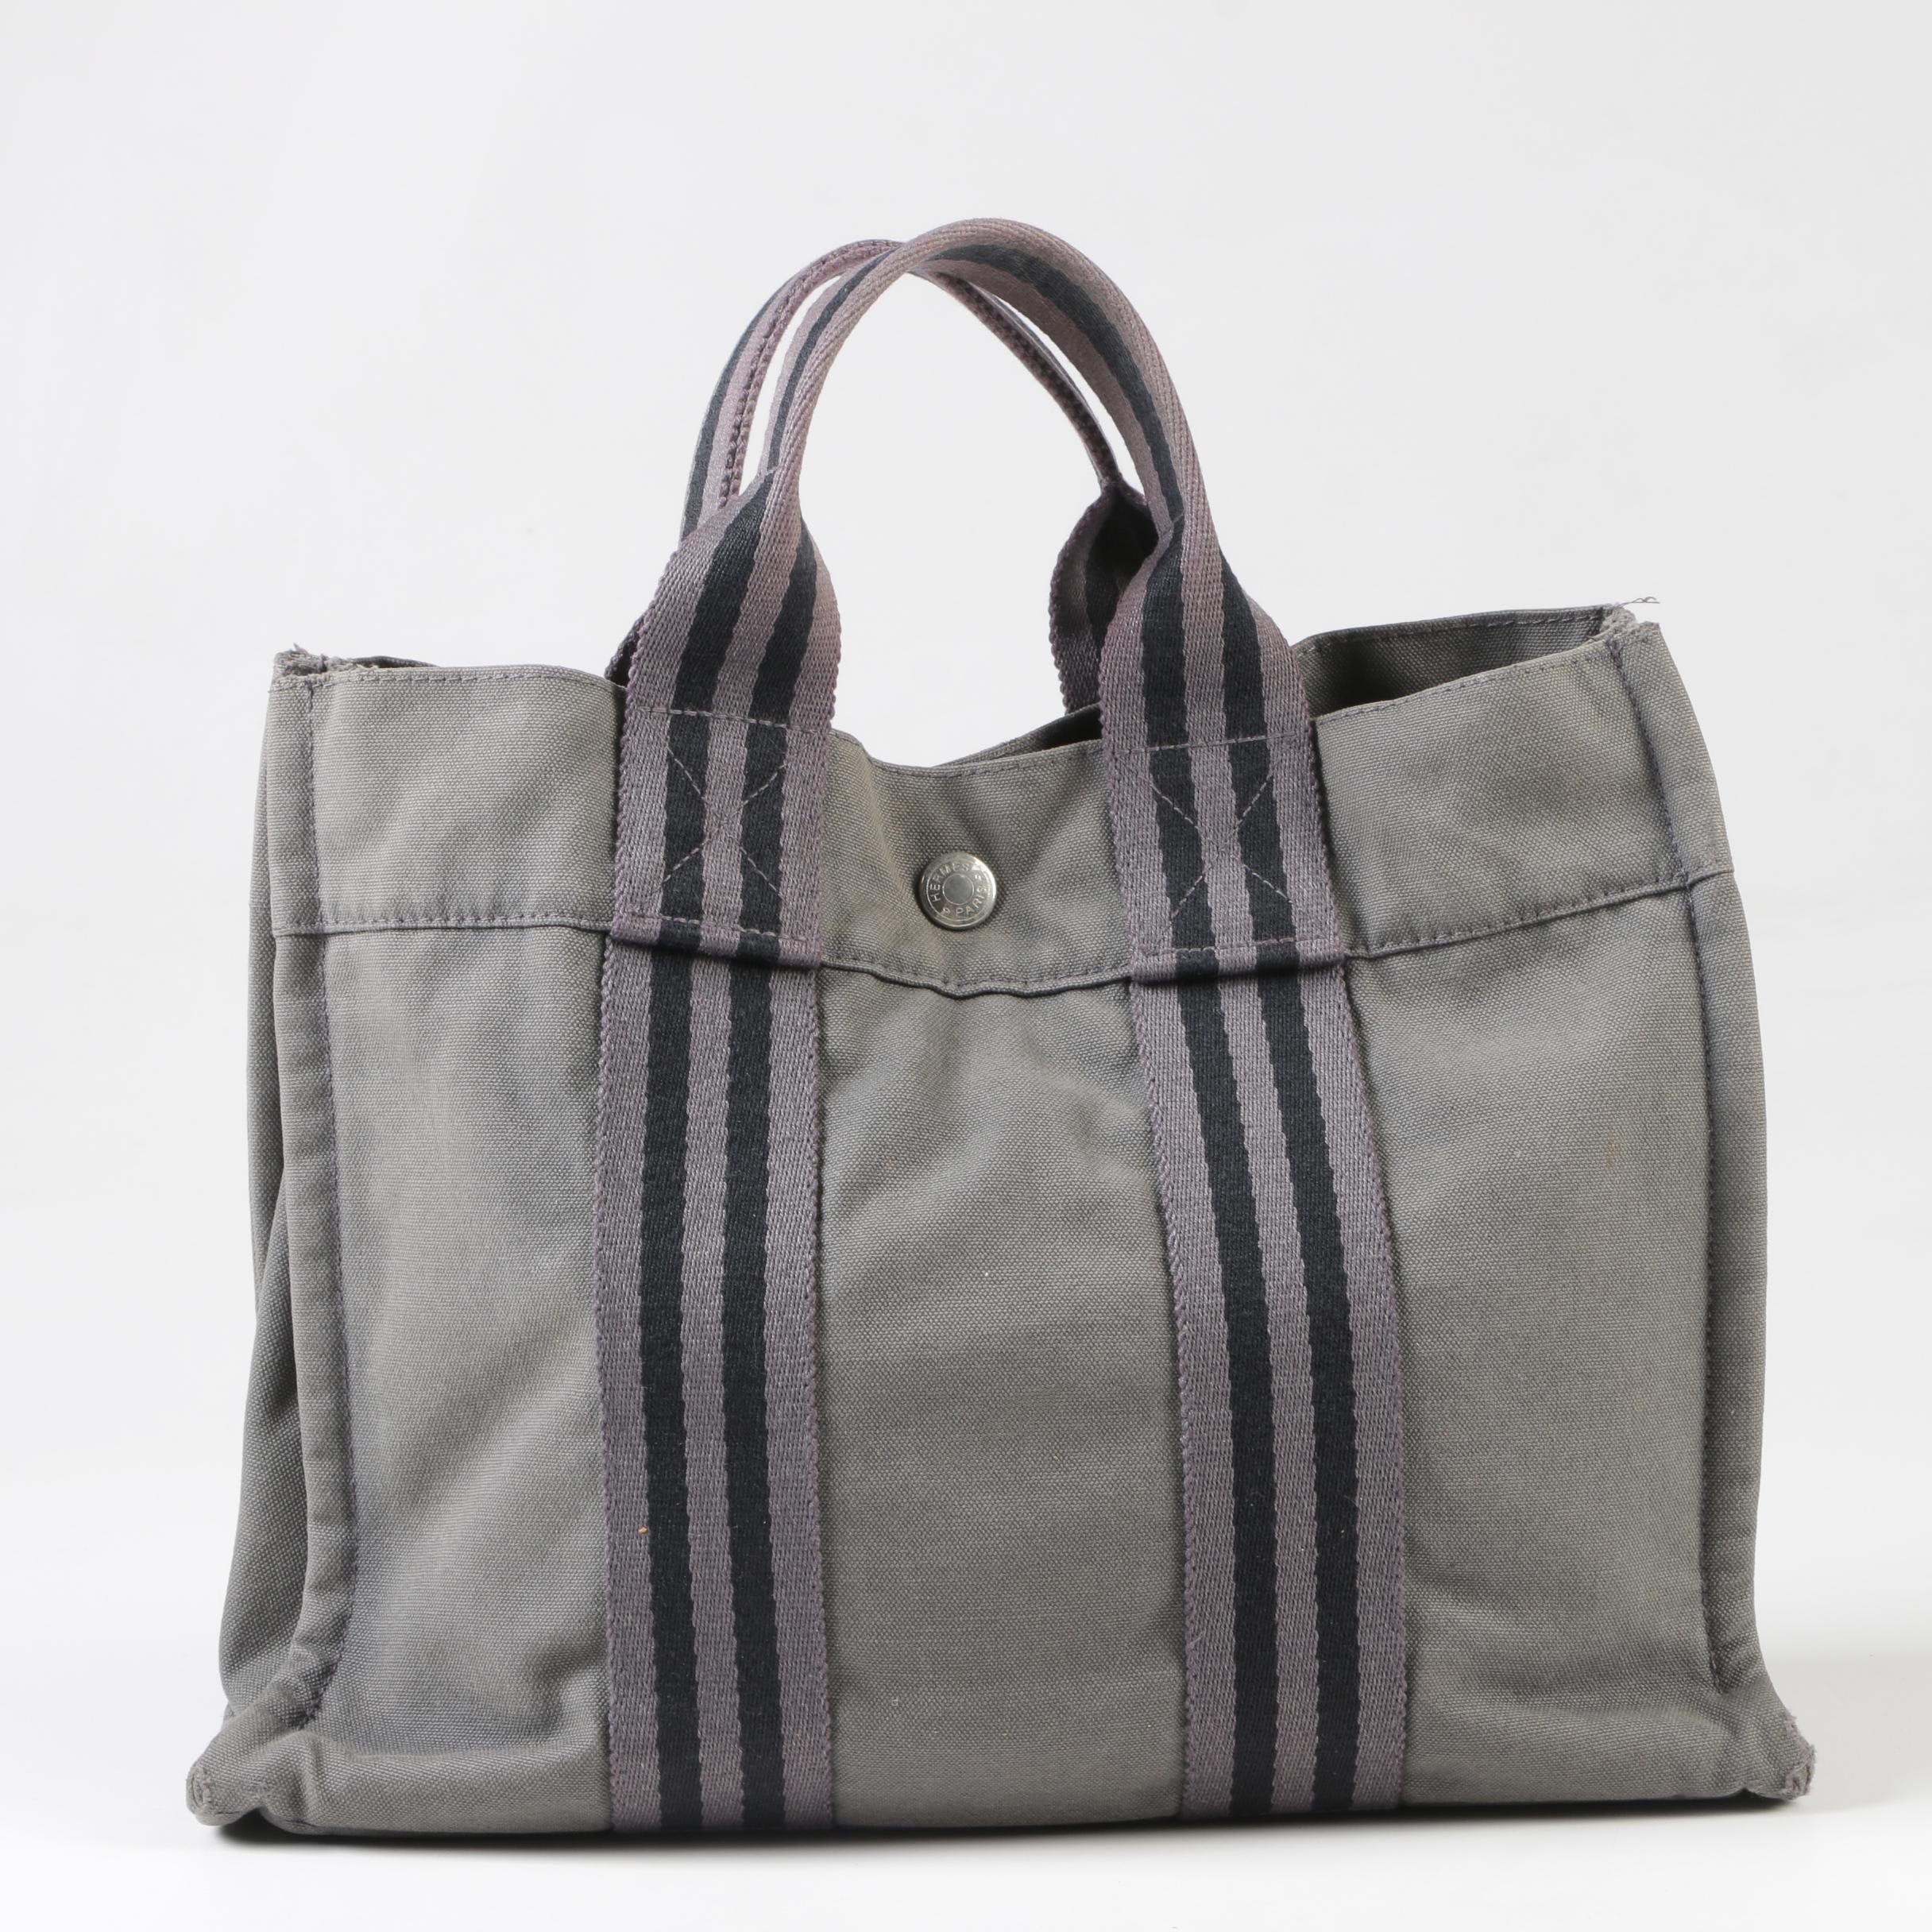 Hermès of Paris Grey and Black Canvas PM Tote